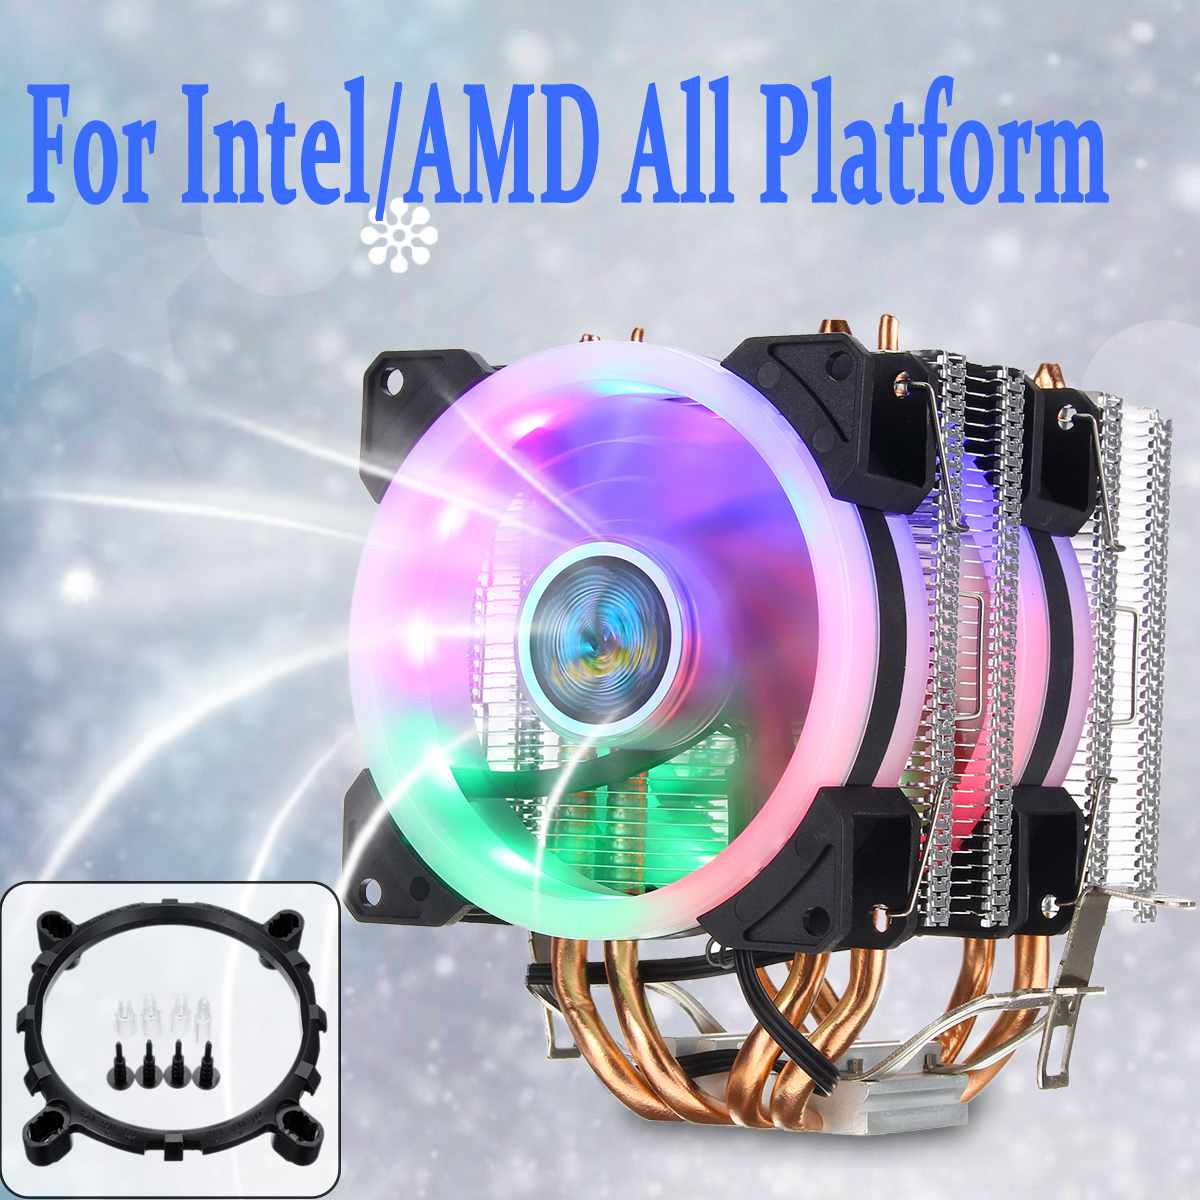 US $18 87 41% OFF|6 Heat Pipe CPU Cooler for Intel LAG  1155/775/1150/1151/1156/1366 for AMD Socket AM3/AM2 RGB LED CPU Fan Cooler  Cooling Heatsink-in